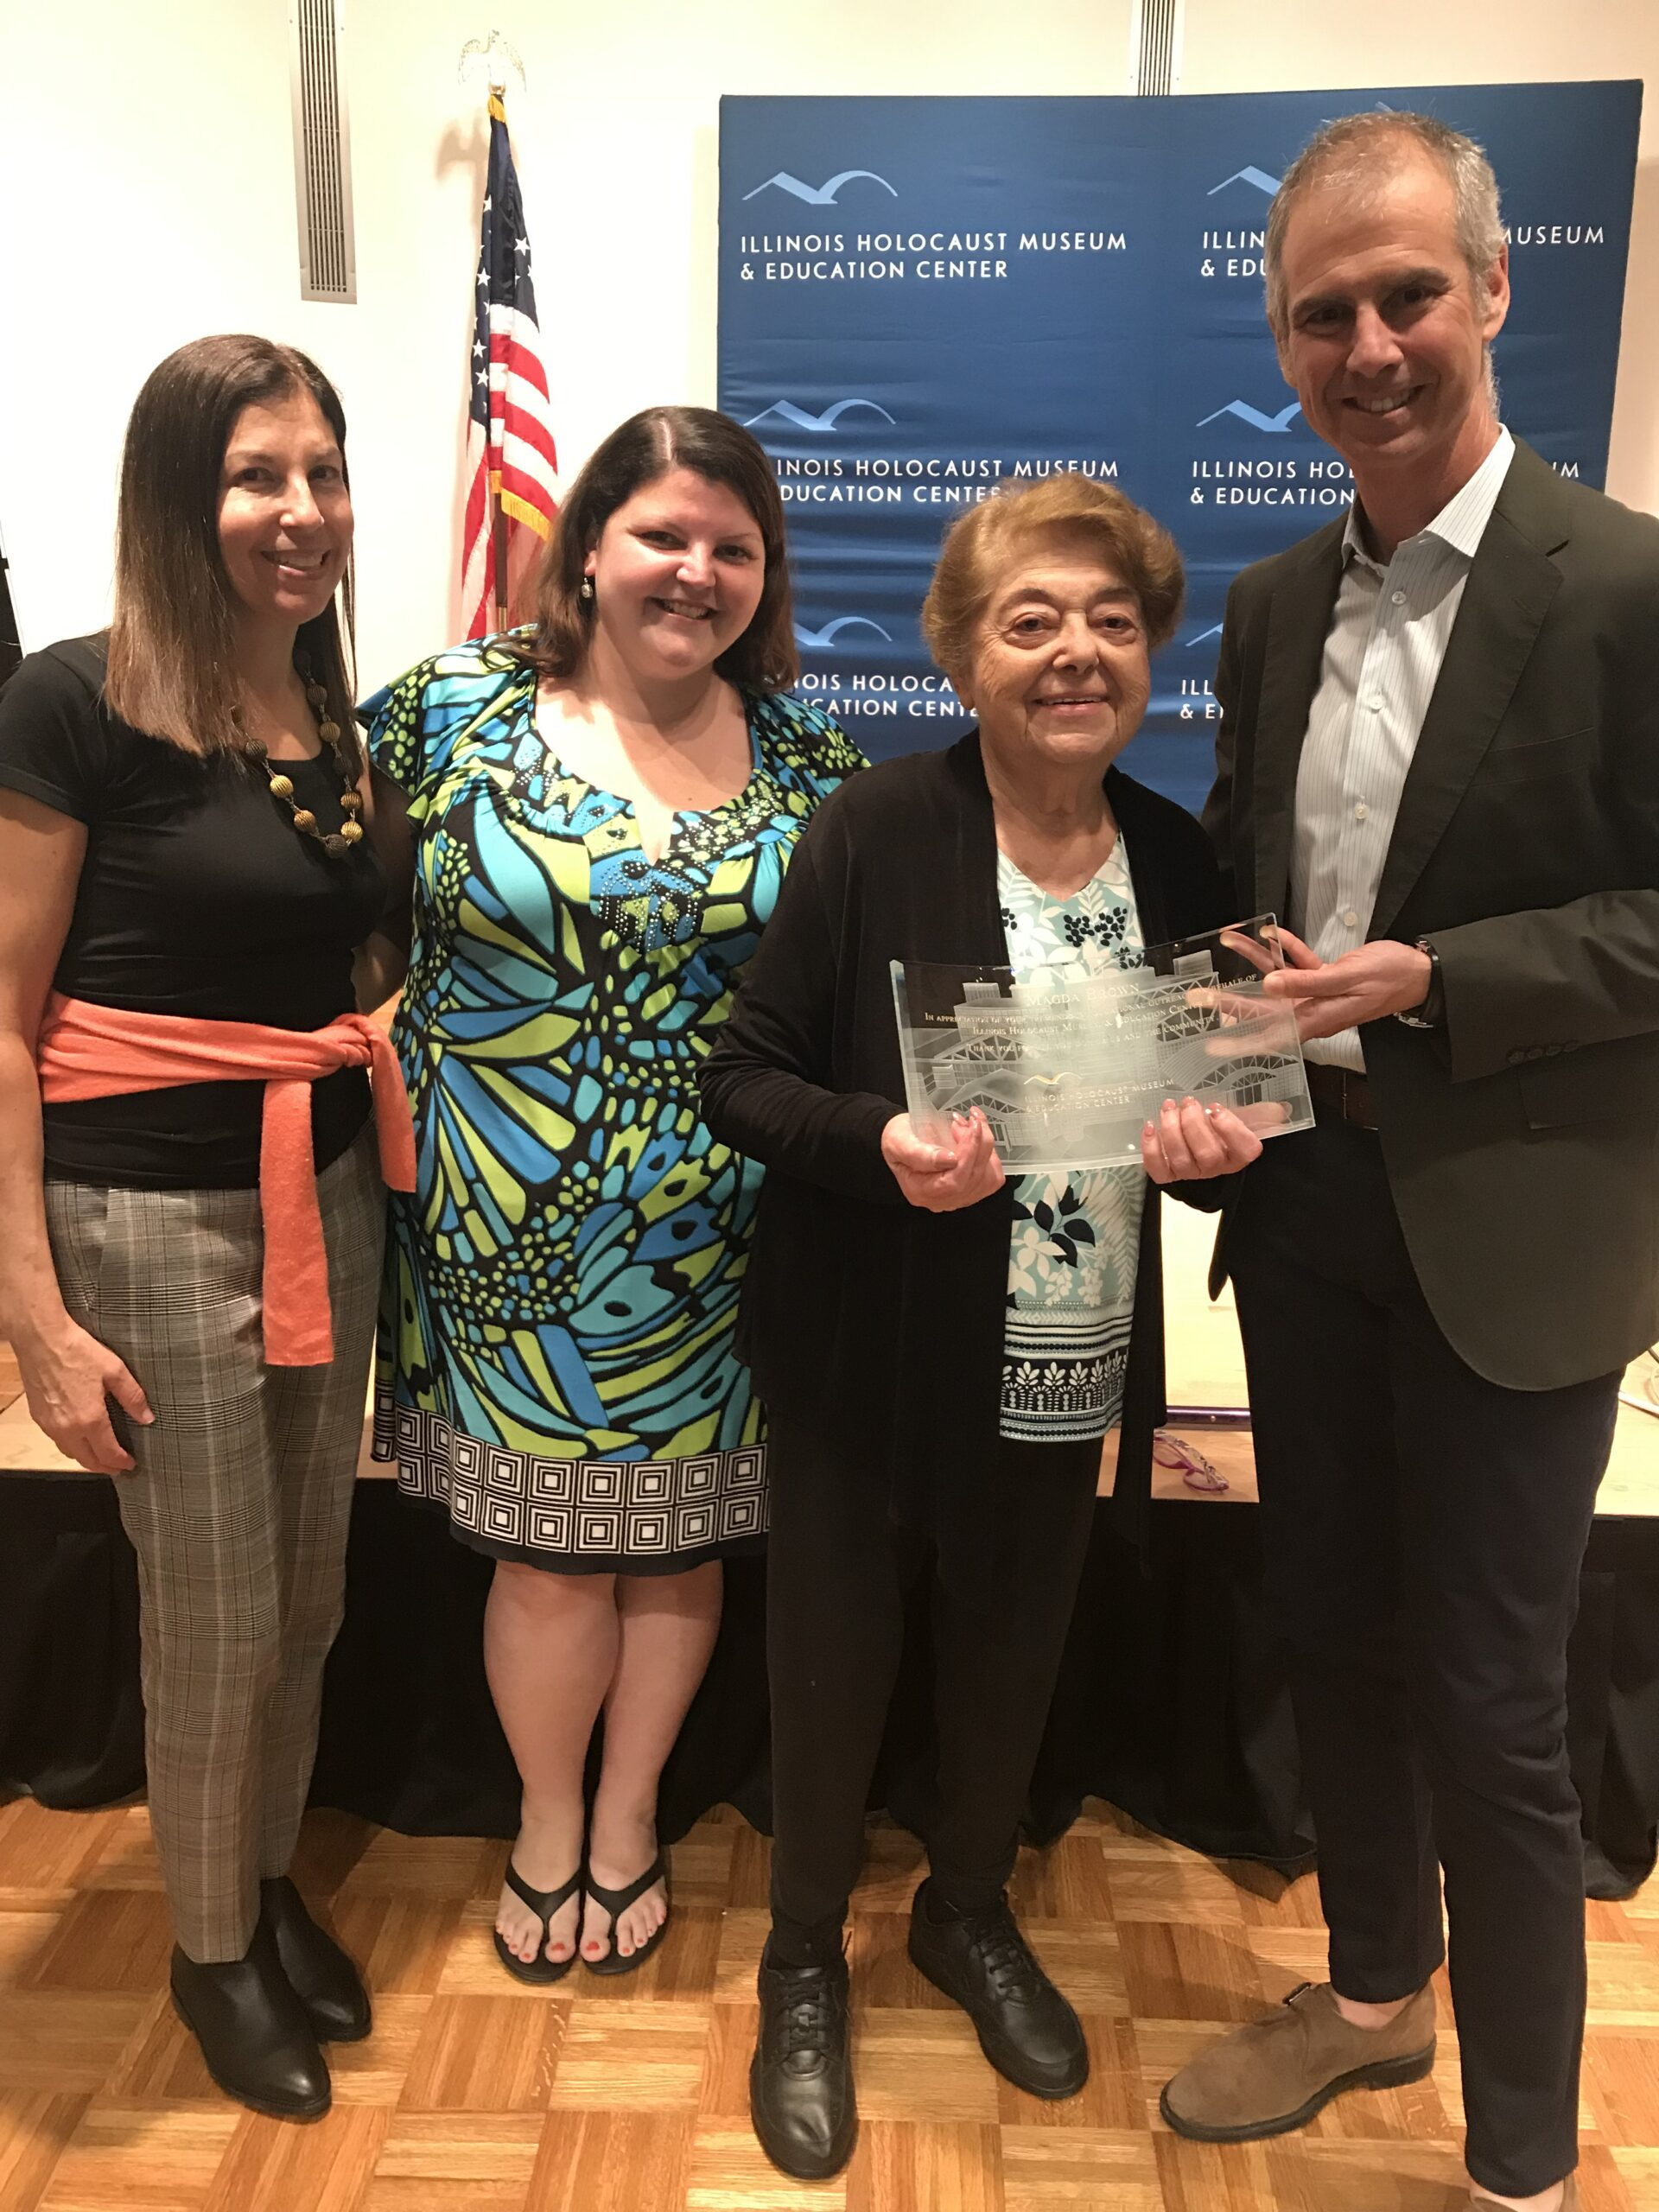 Magda Brown receives an award from the Illinois Holocaust Museum and Education Center